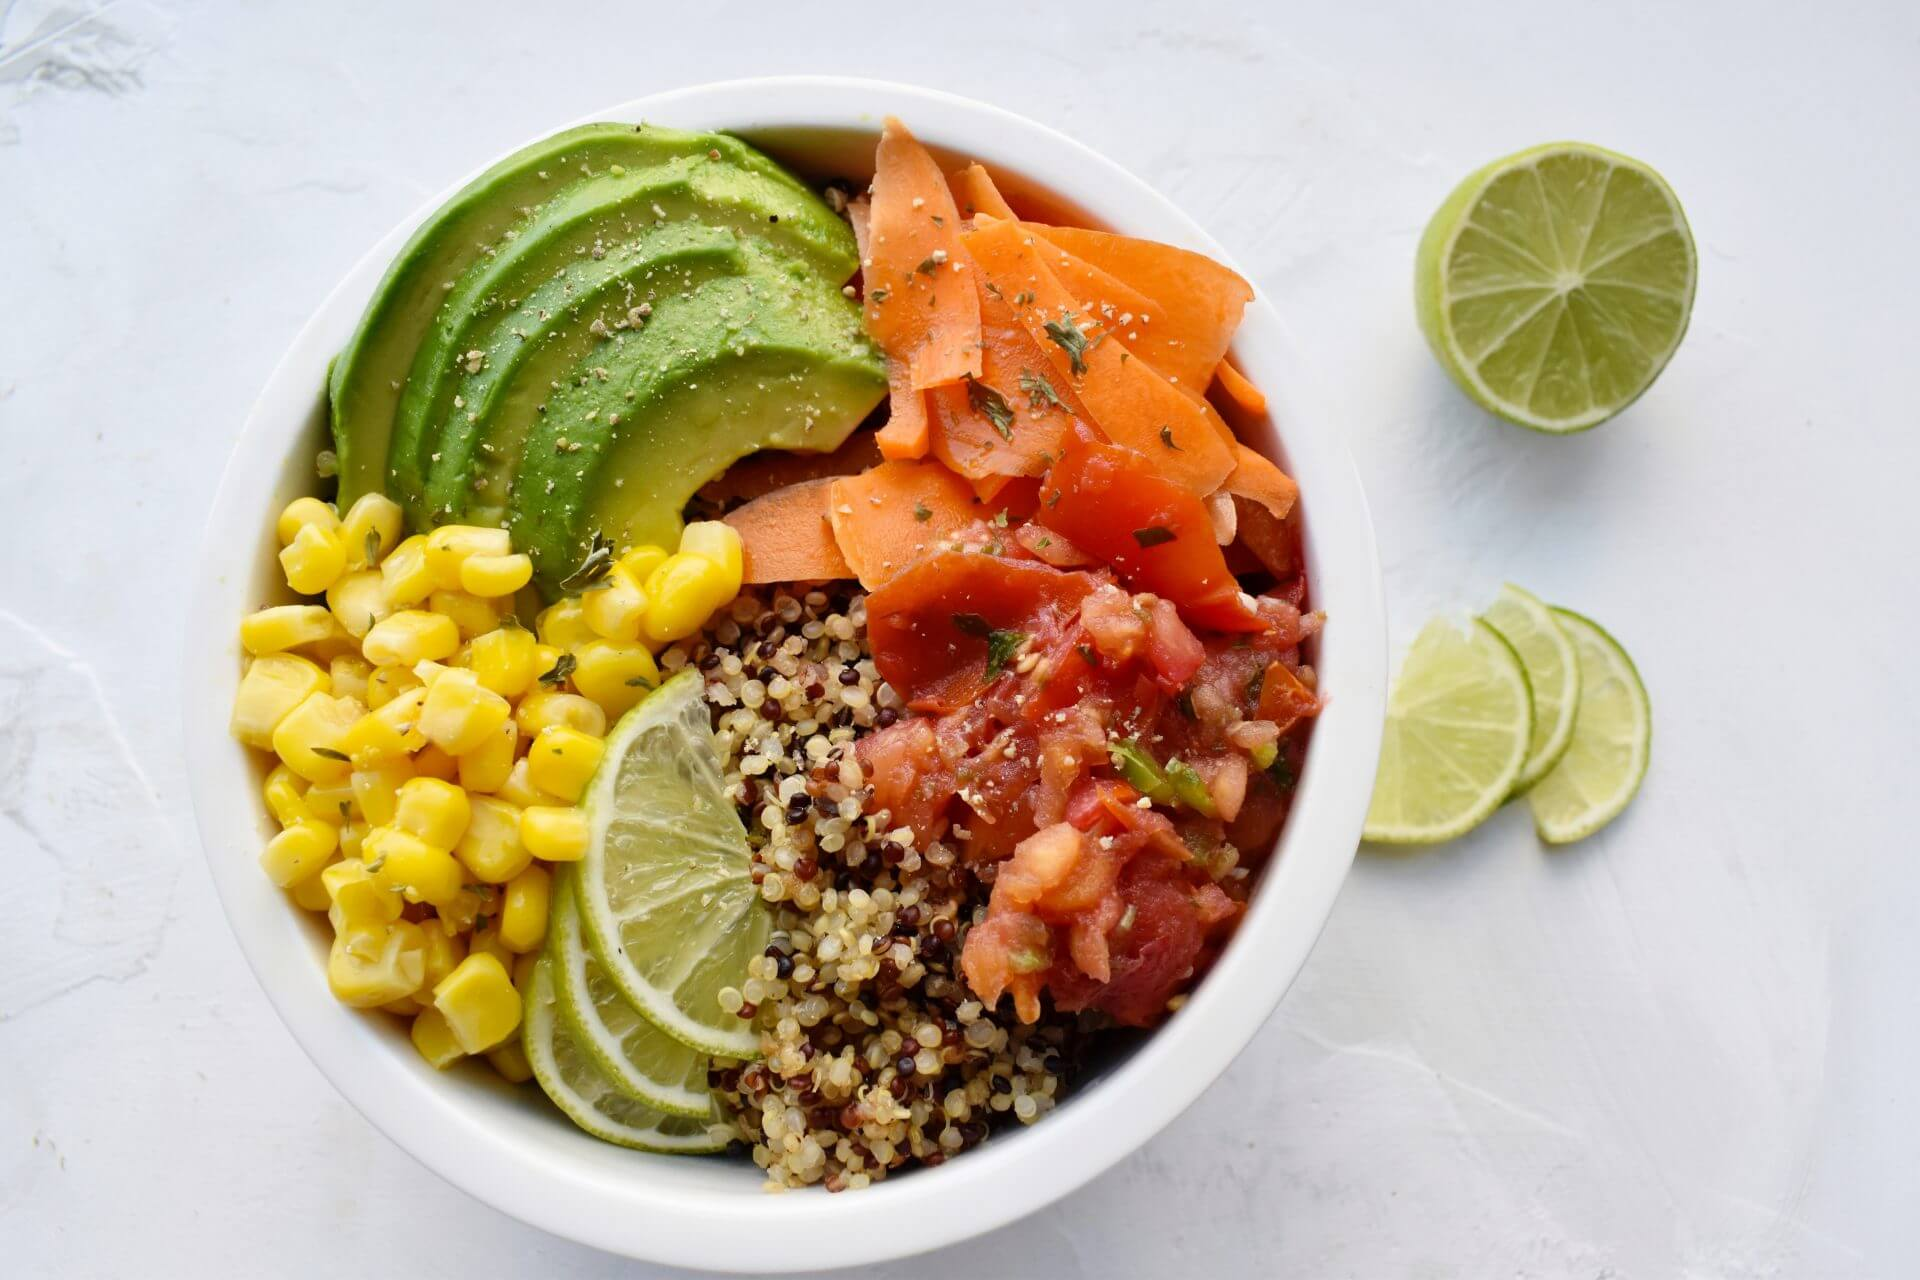 Simple Savory Quinoa Bowl